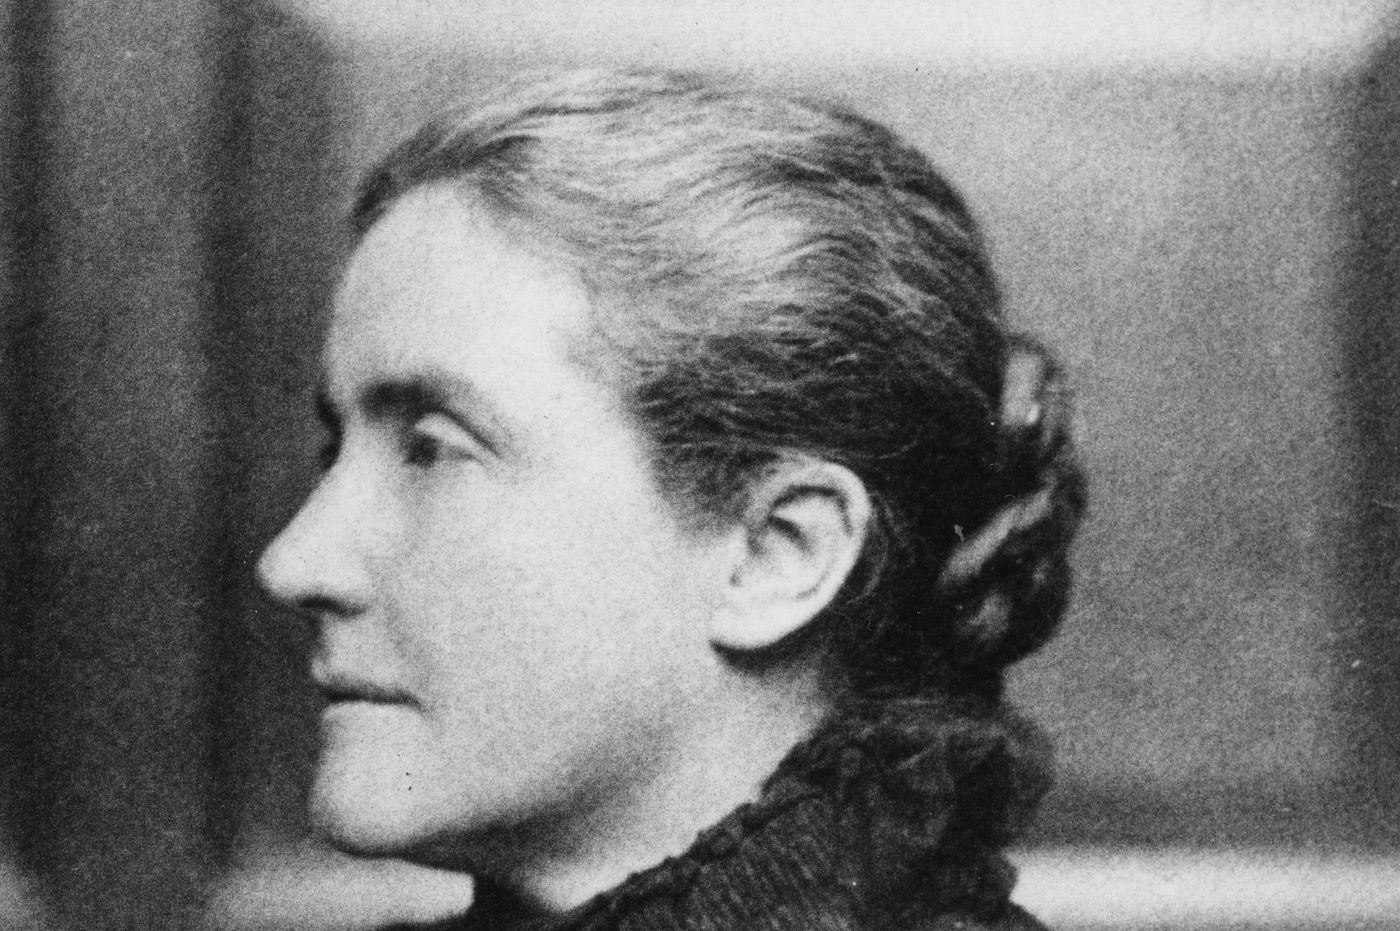 Bryn Mawr to reduce visibility of its 2nd president after reviewing her history of racism